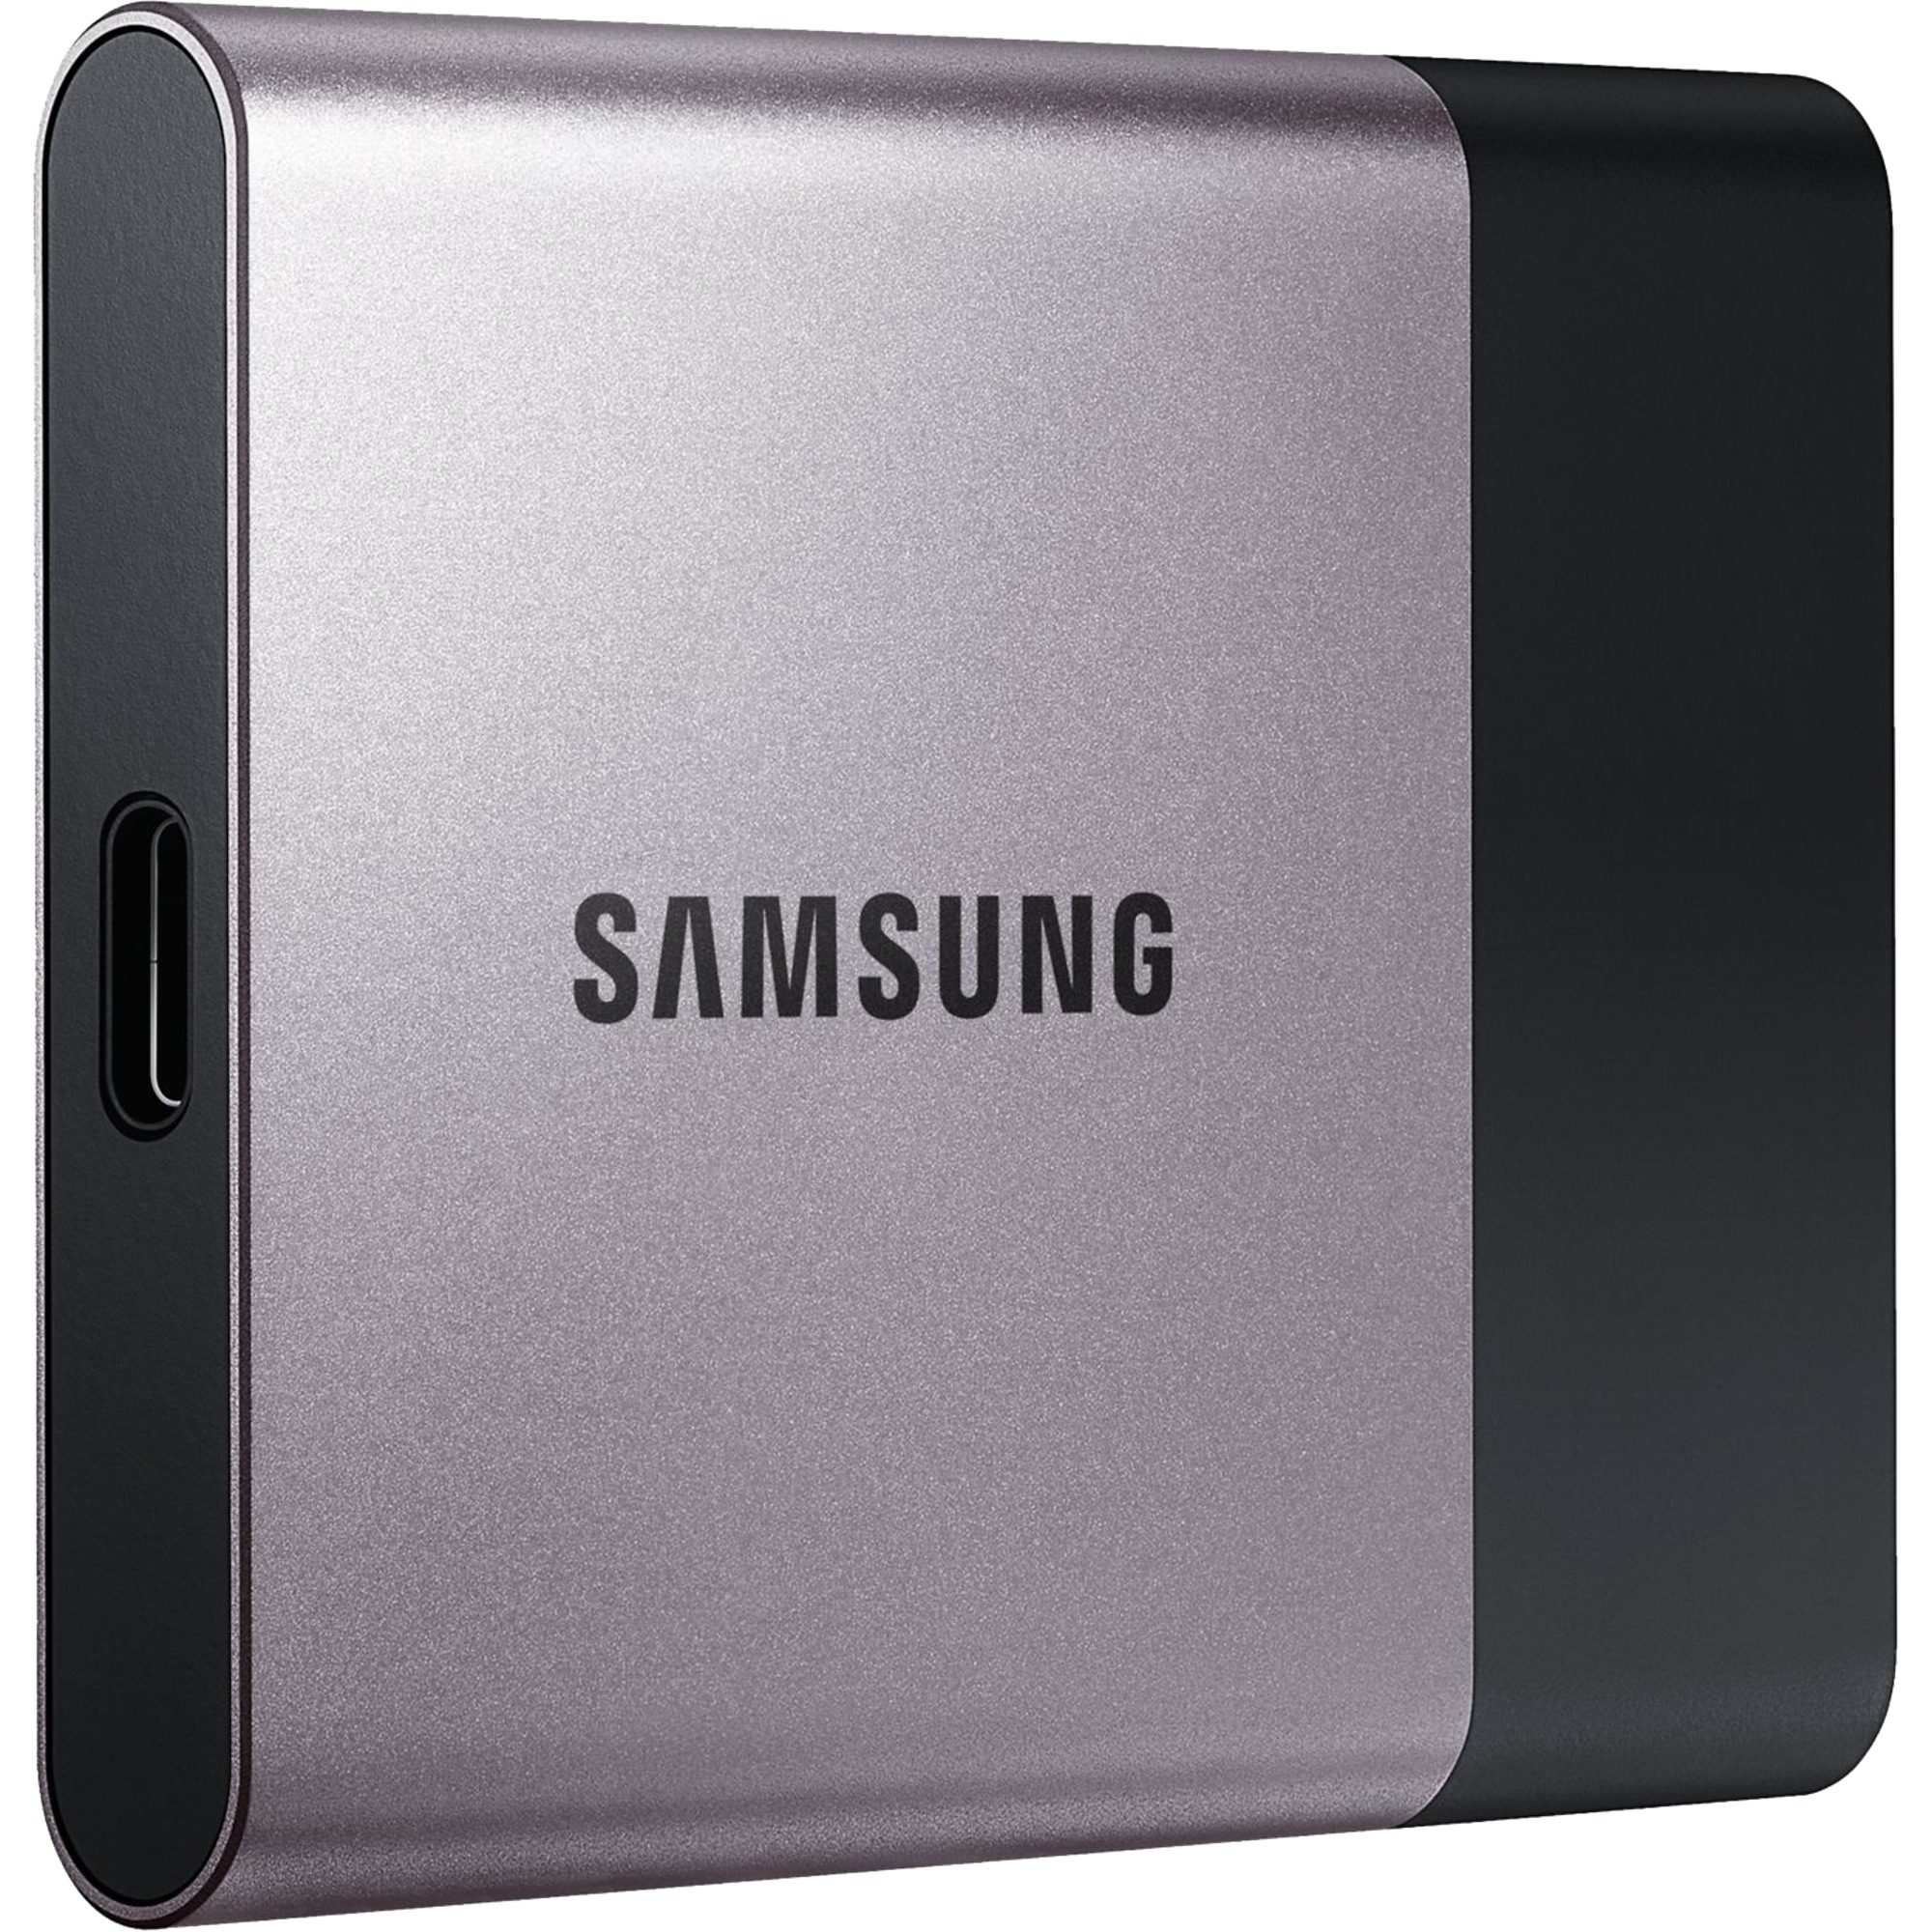 Samsung Solid State Drive »SSD 500GB Portable T3 USB3.1 Gen1«